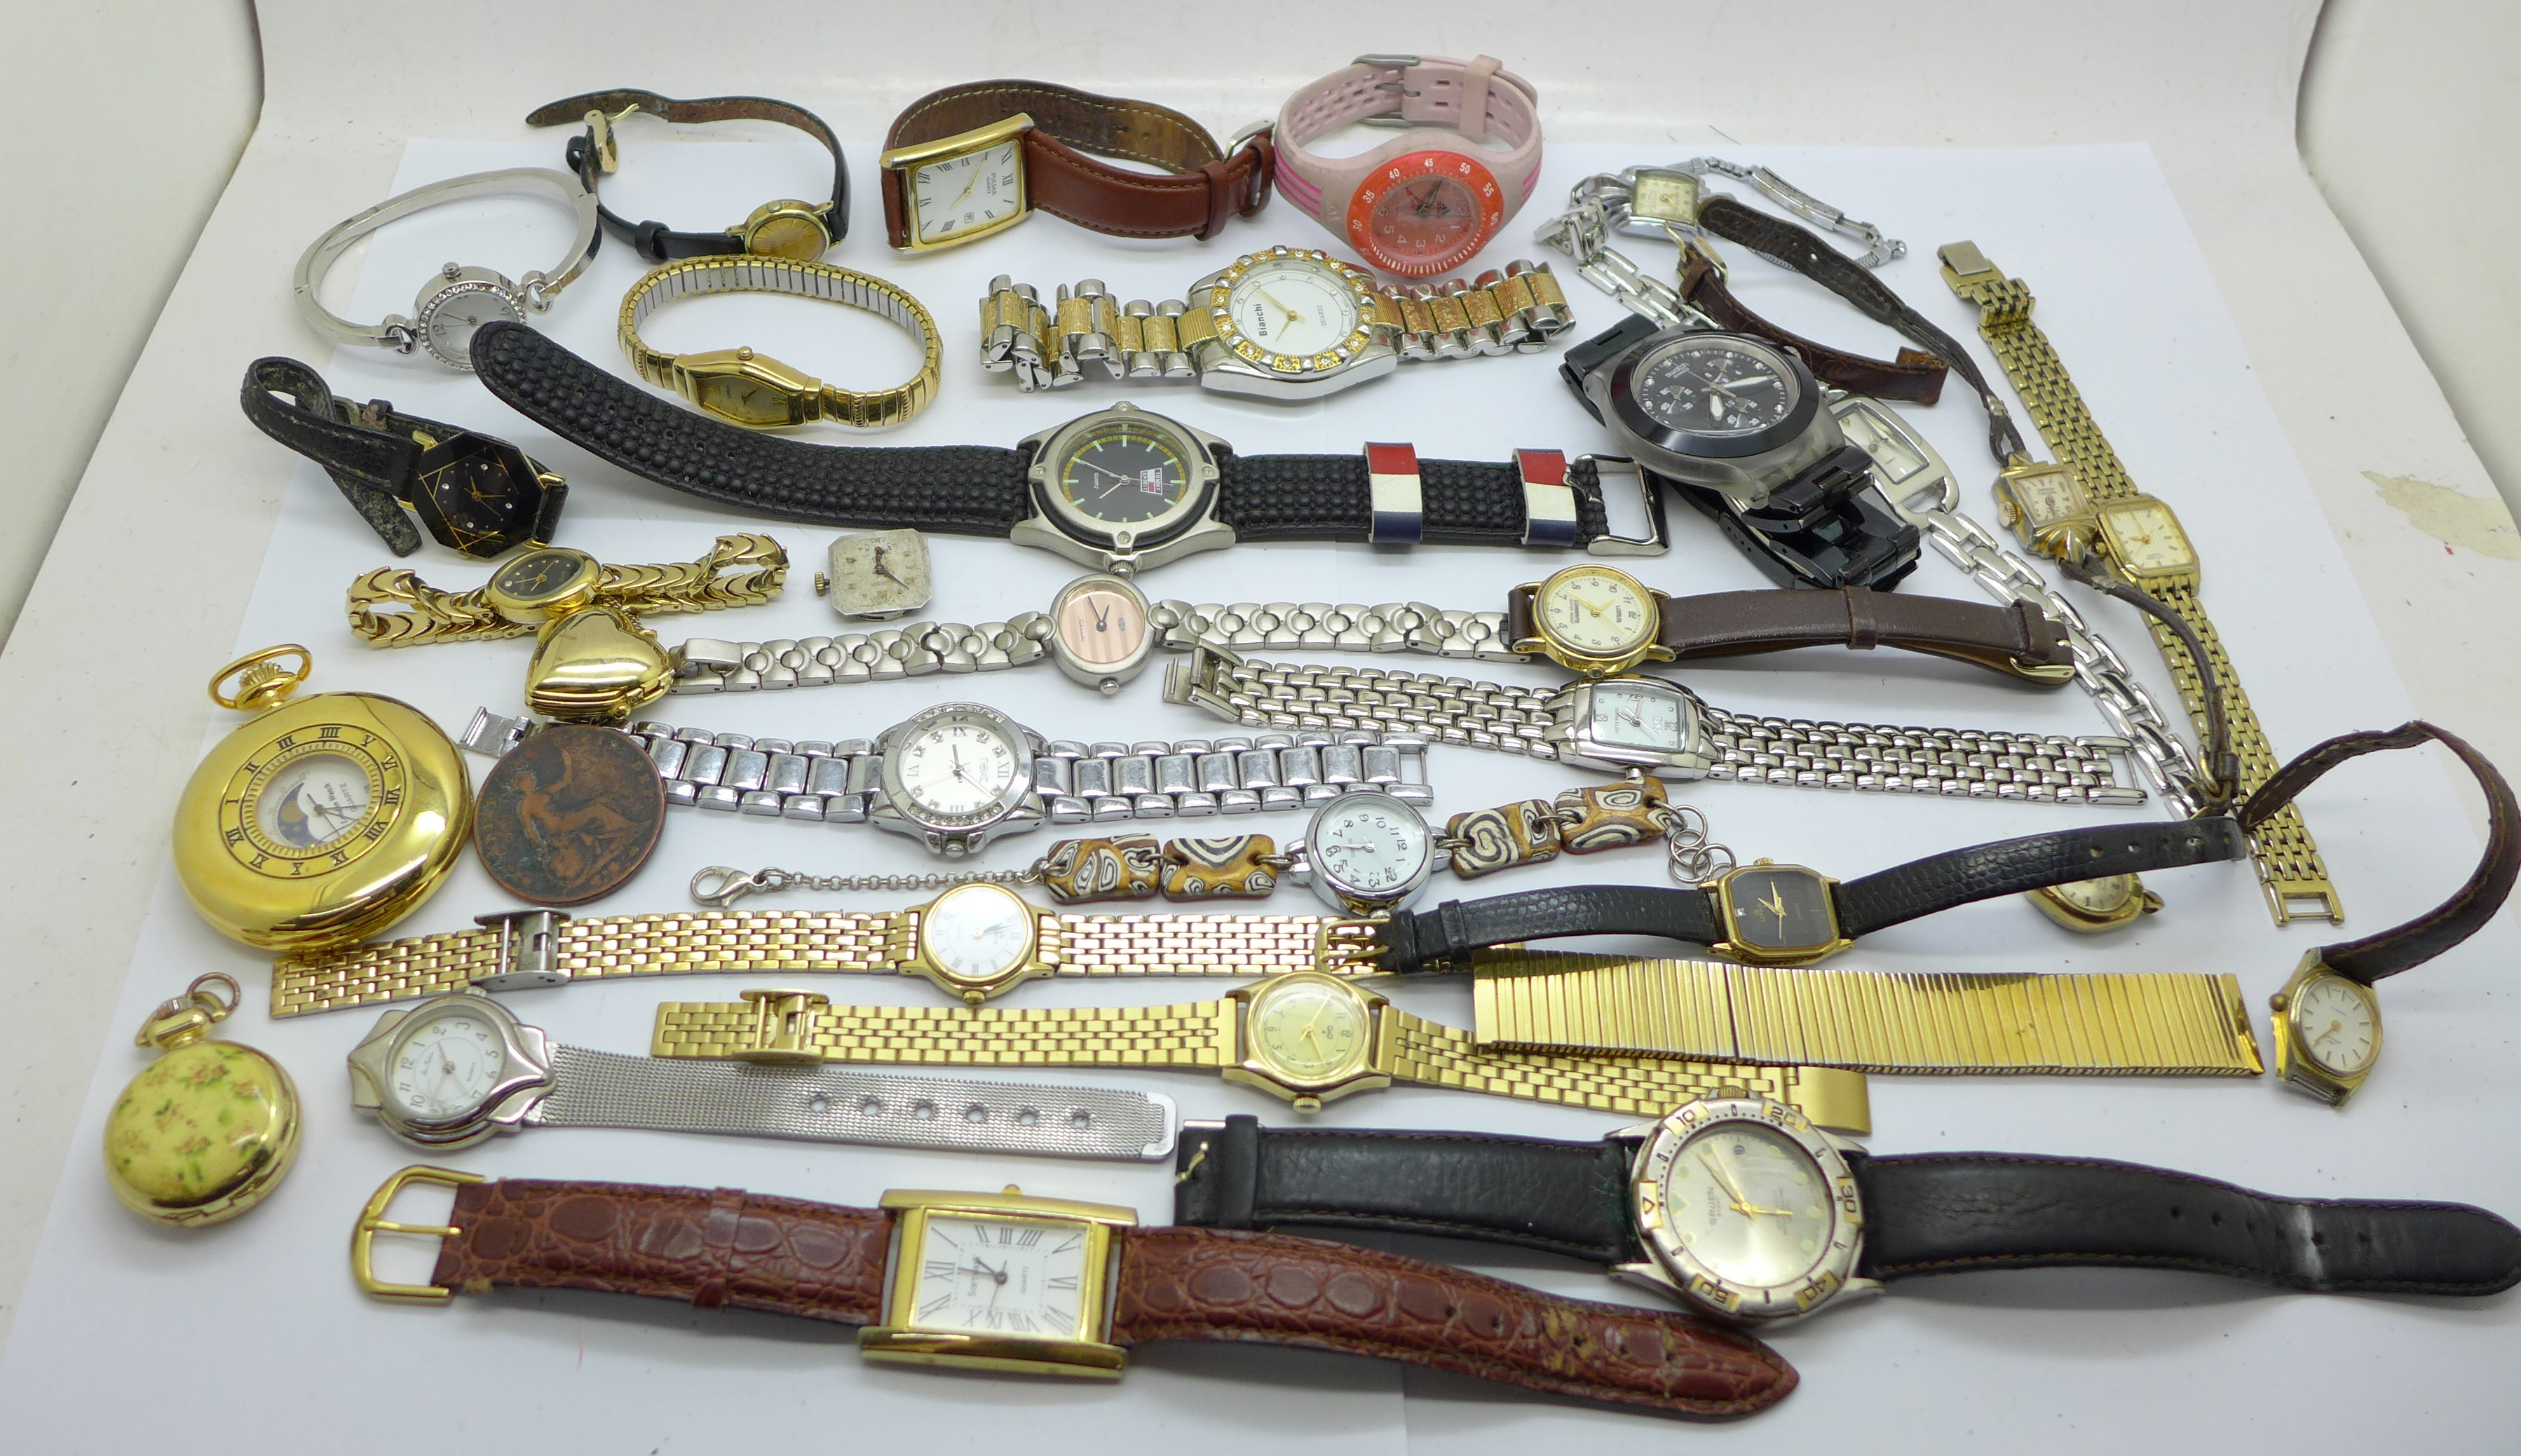 Wristwatches, pocket watches, etc., including Swatch and Seiko